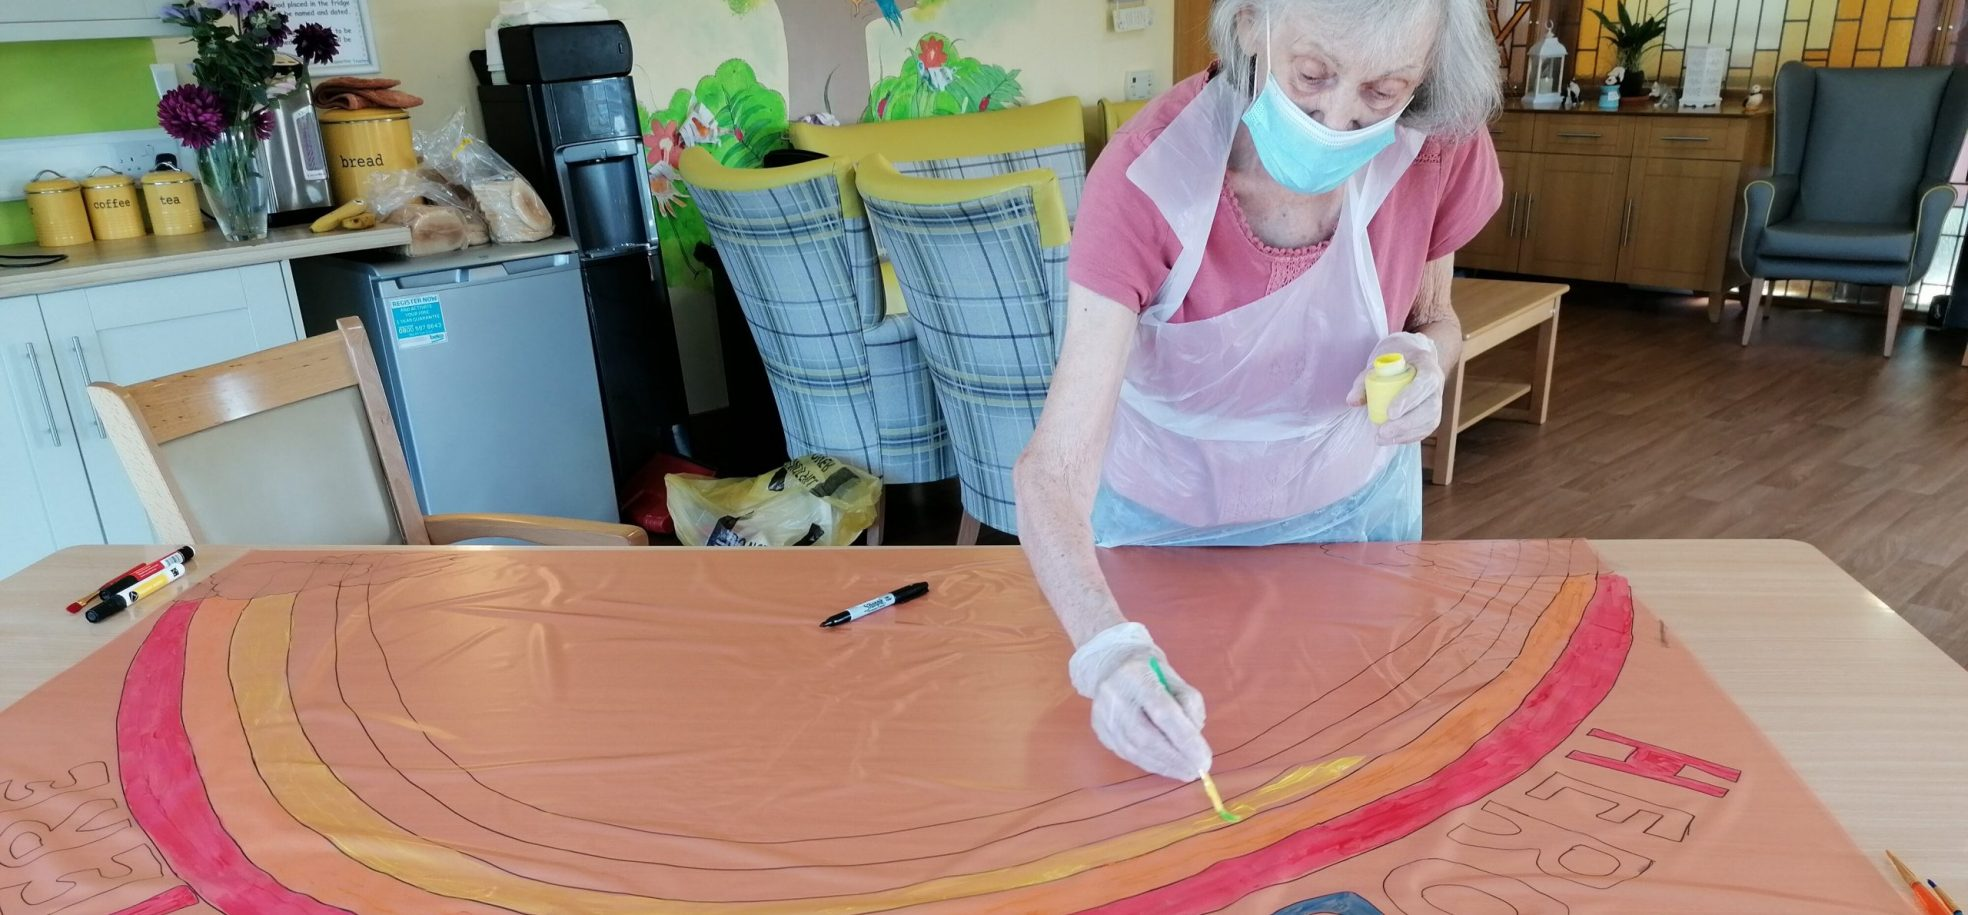 Scarbrough Court resident paints a rainbow picture to support care workers